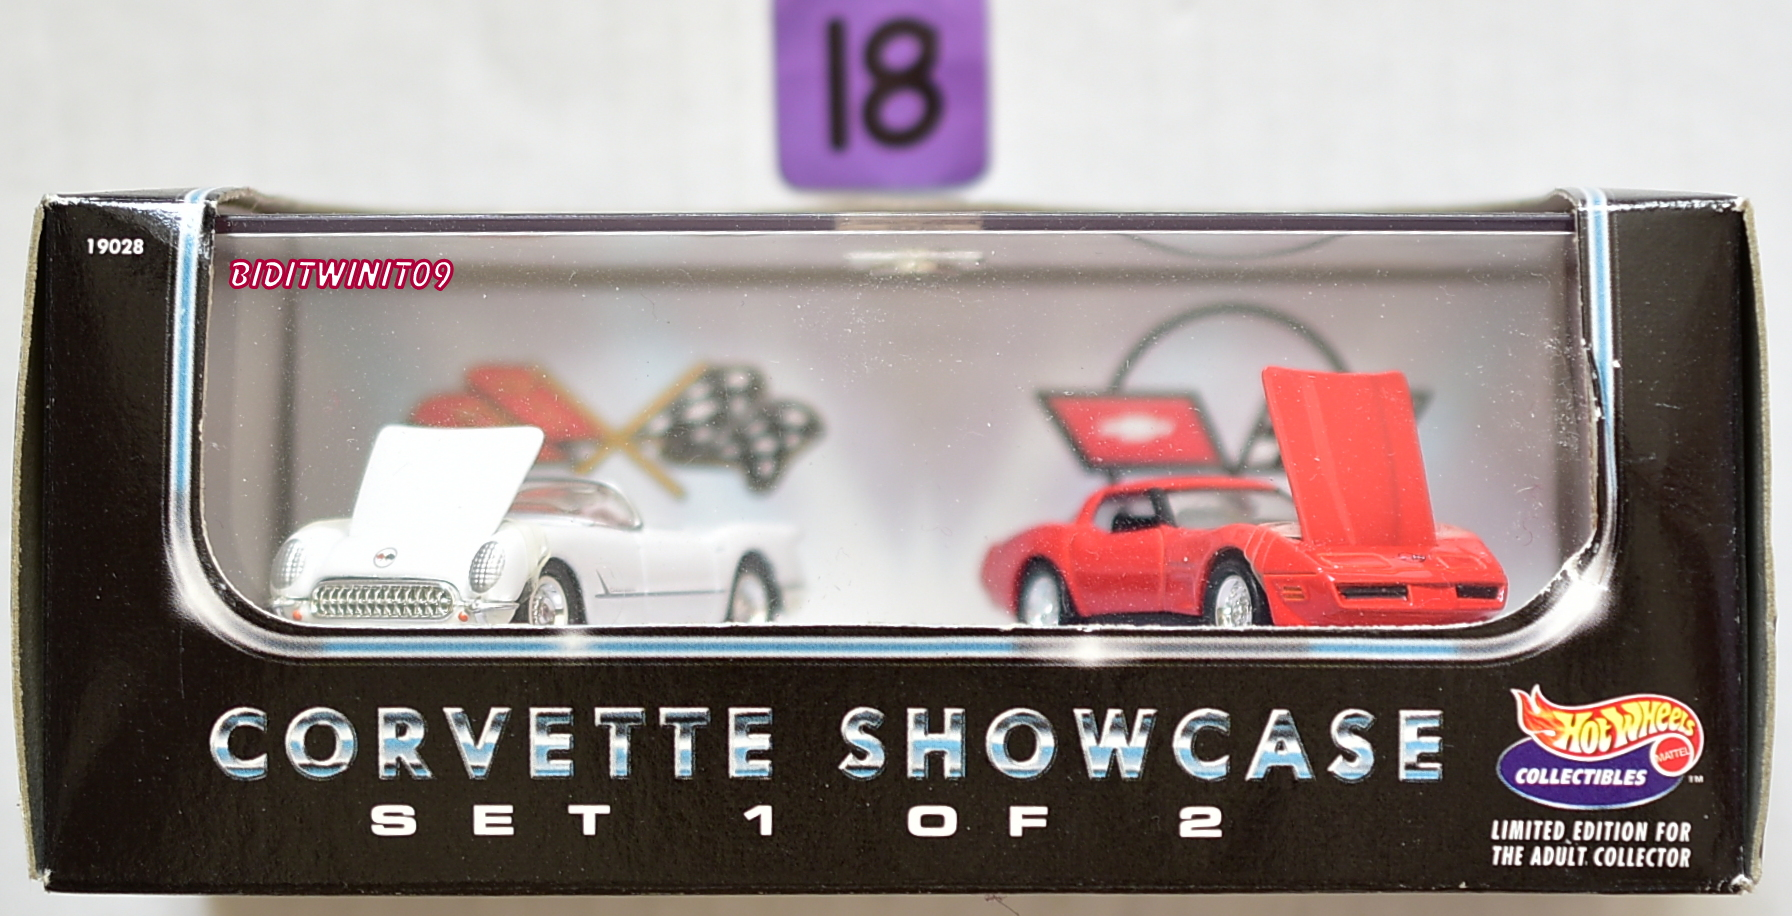 HOT WHEELS COLLECTIBLES CORVETTE SHOWCASE SET 1 OF 2 1953 - 1982 CORVETTE E+